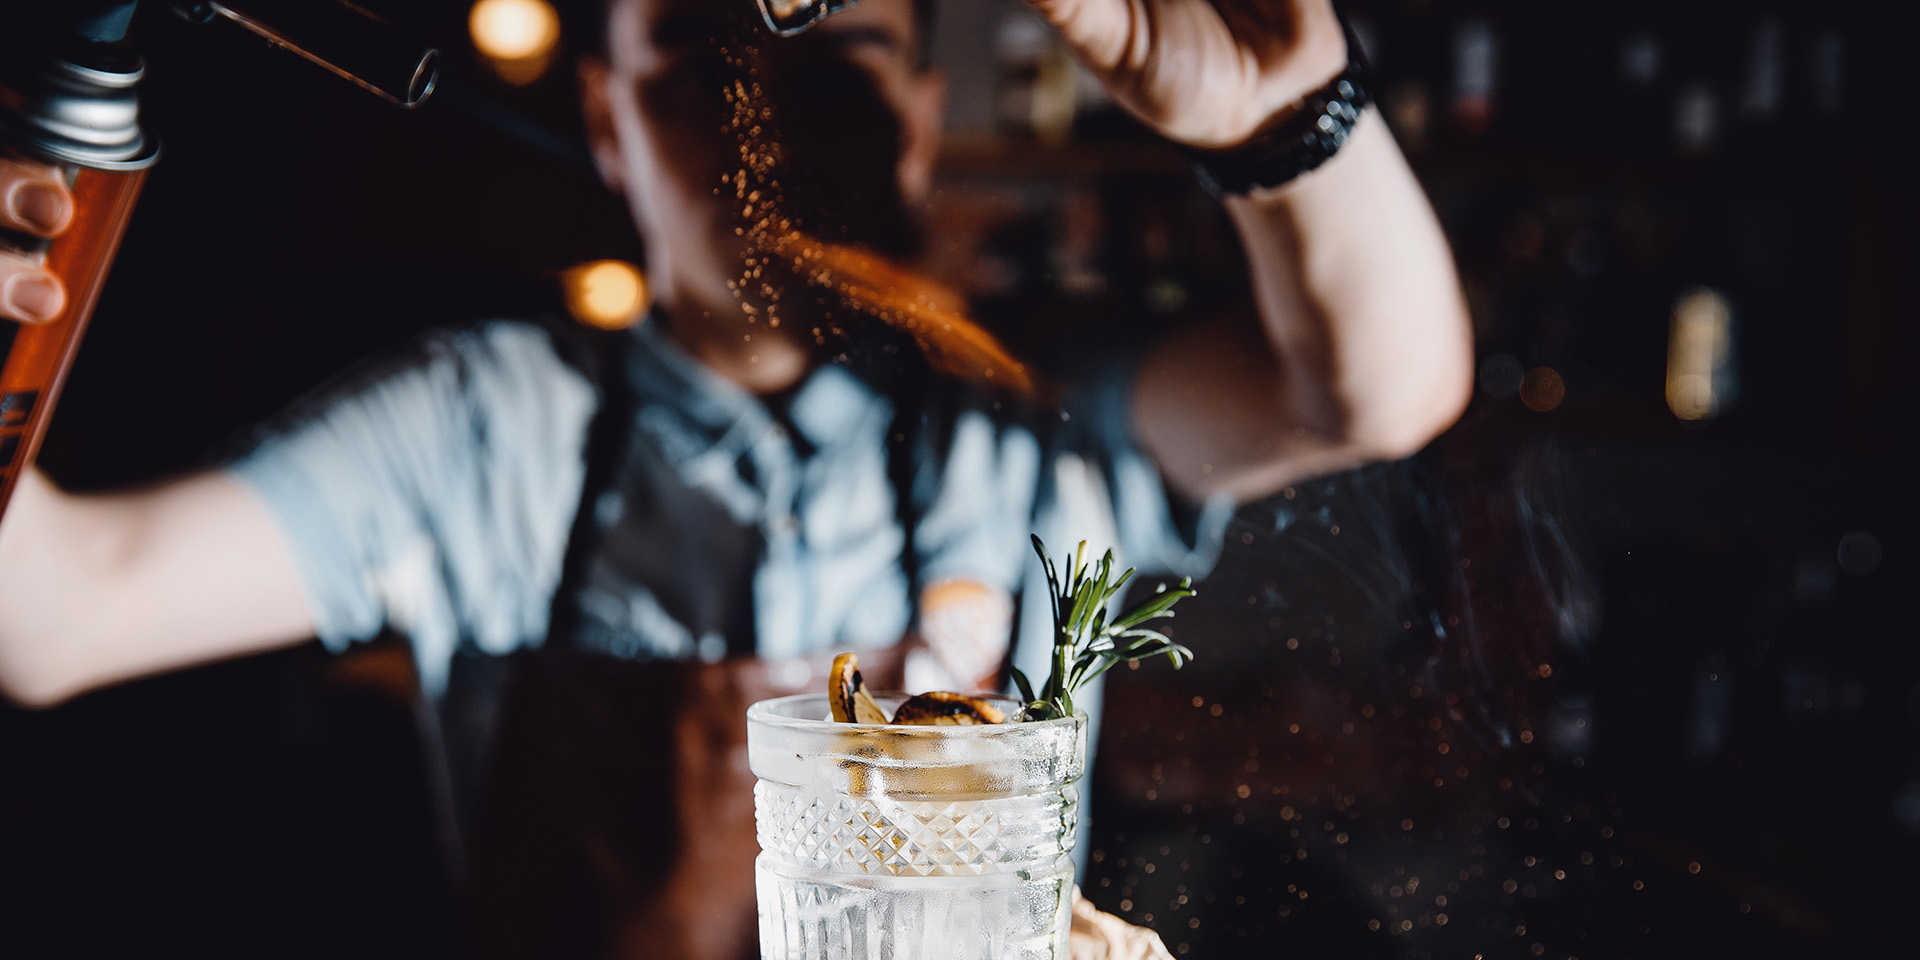 Beverage cocktail herbs and sparks